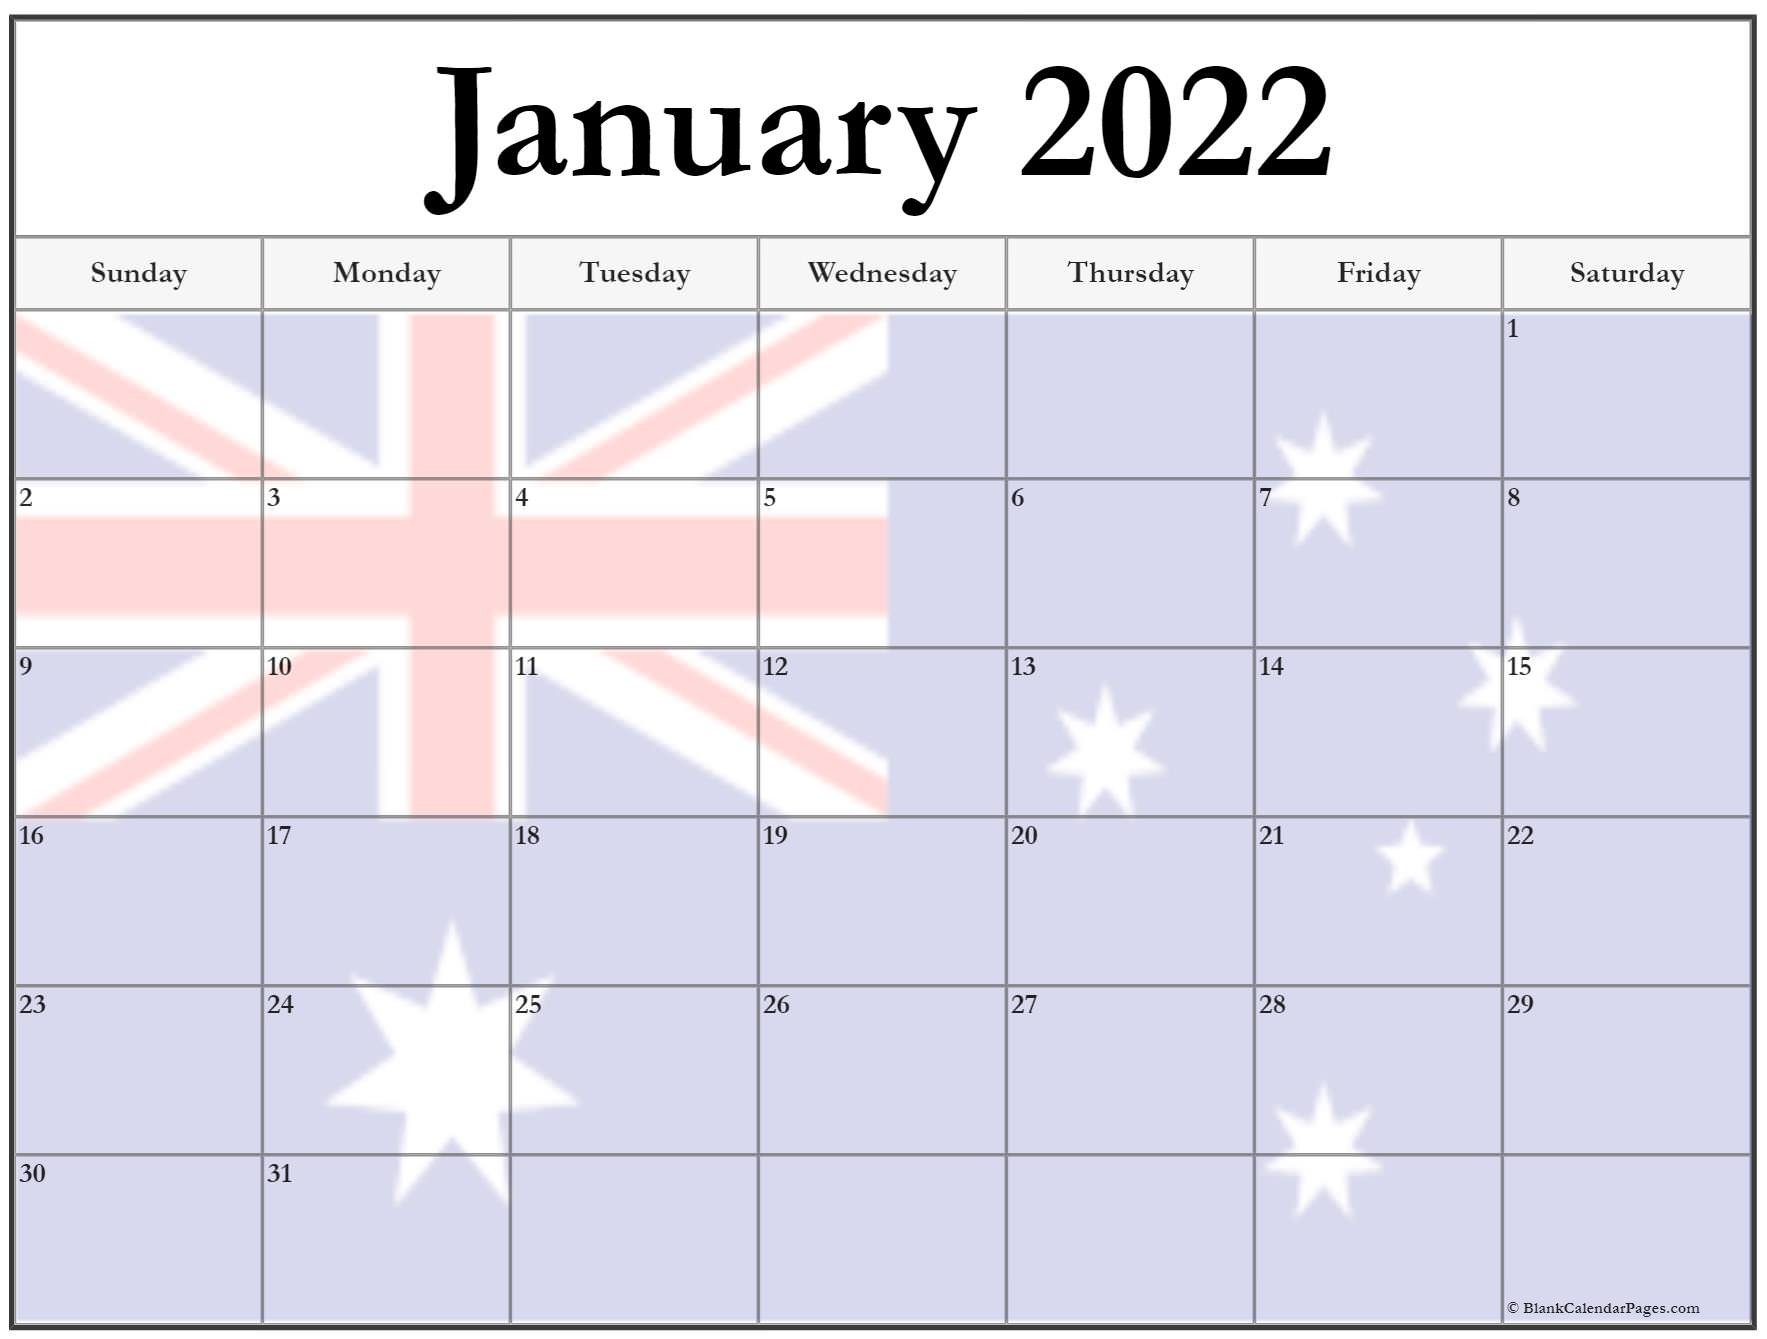 Collection Of January 2022 Photo Calendars With Image Filters. with regard to January 2022 Calendar Printable Free Graphics